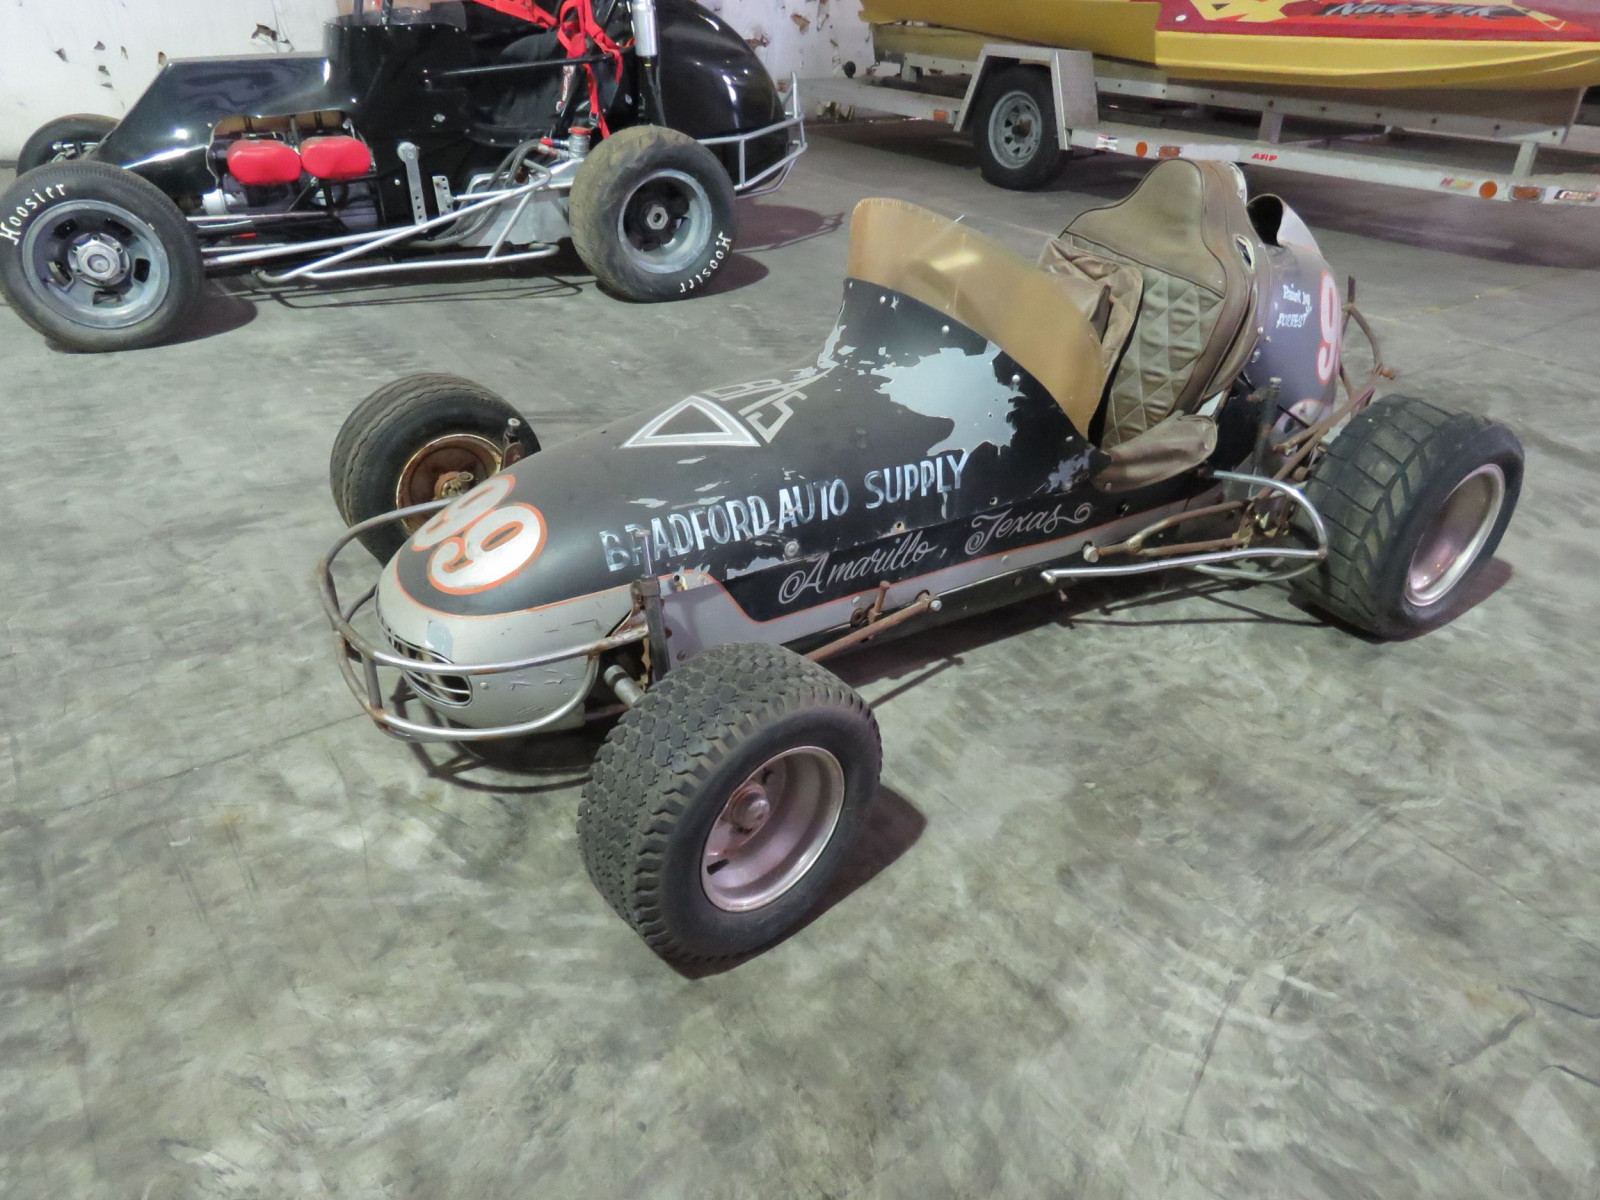 Vintage  1/2 scale Midget  Race Car - Image 2